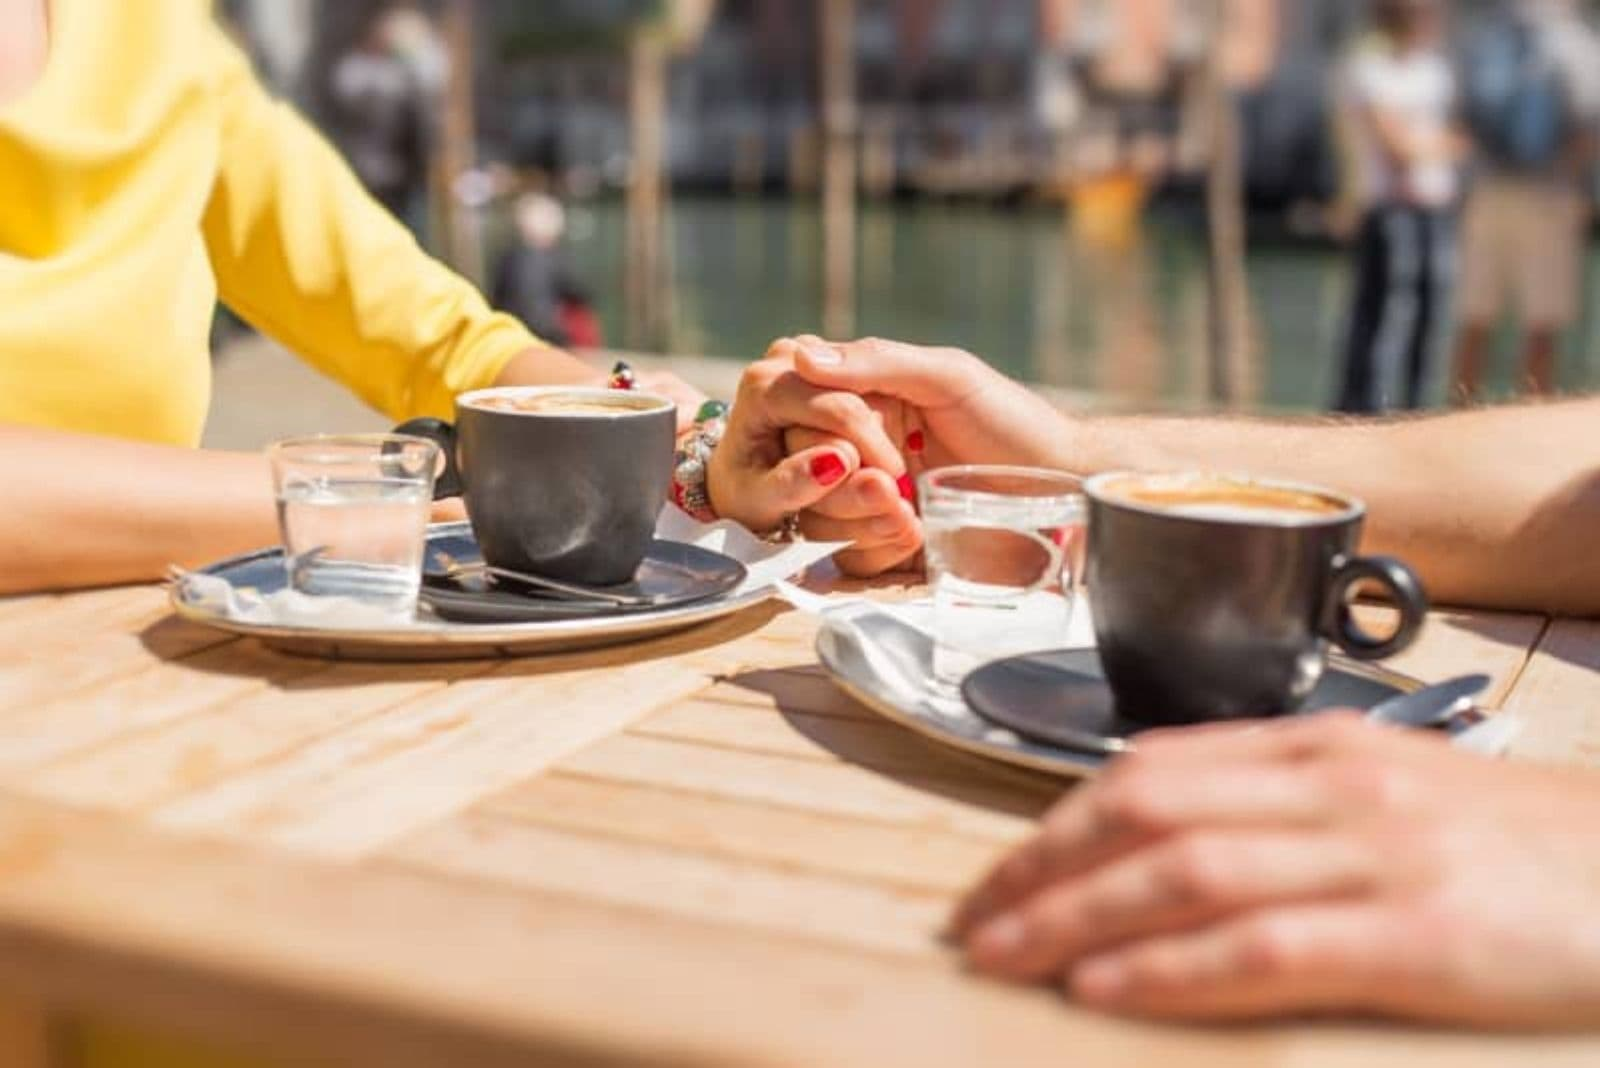 sunkissed couple drinking coffee